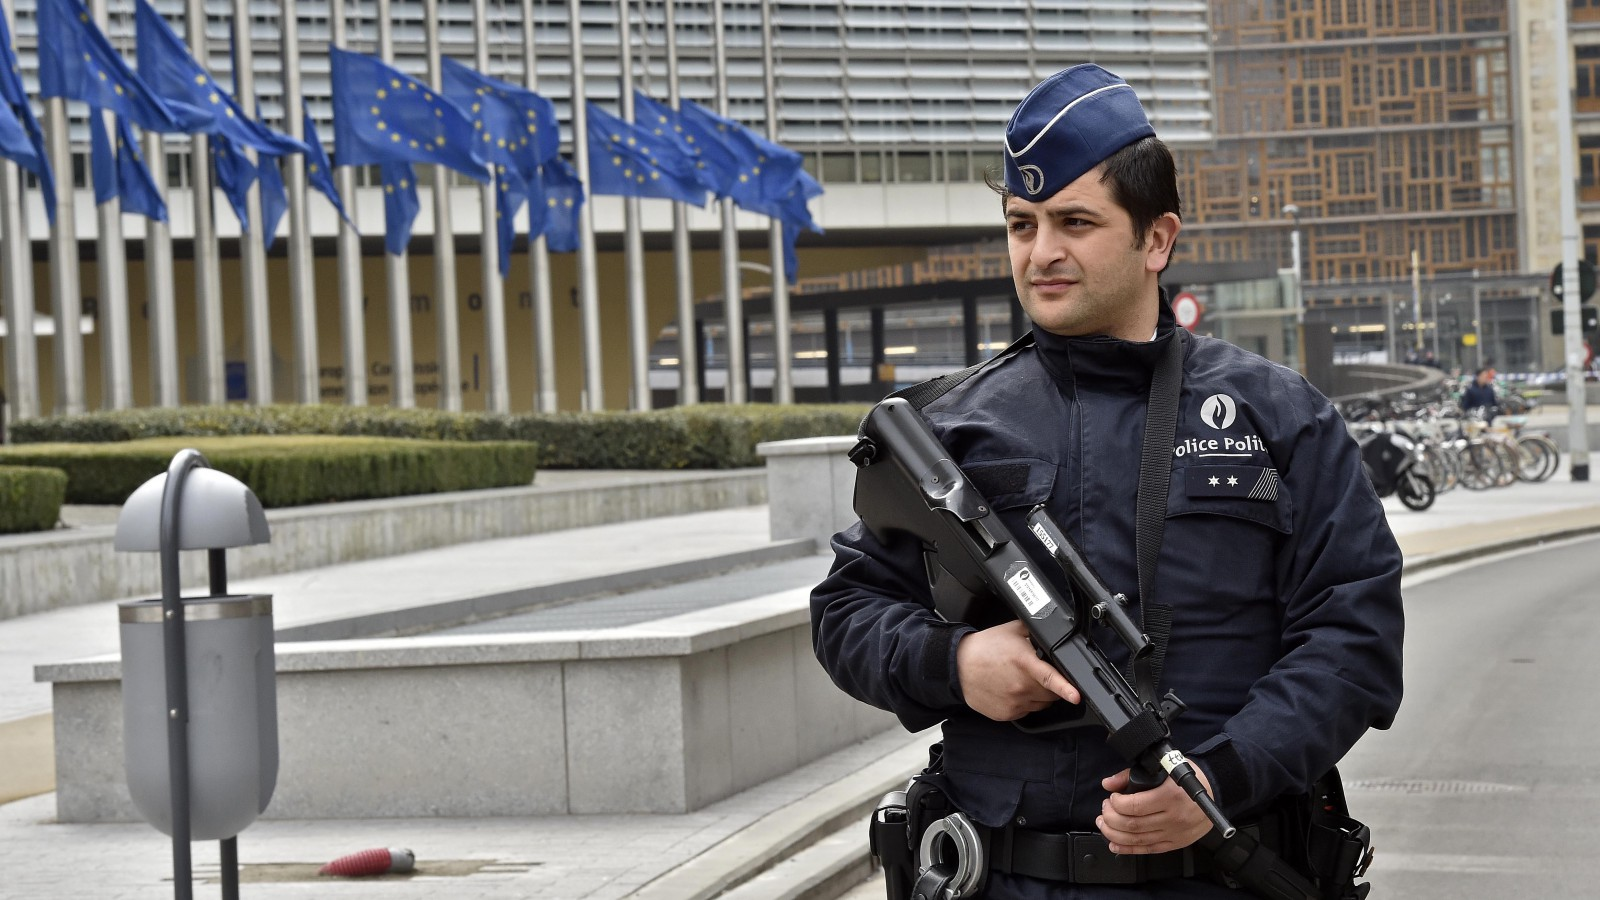 Police patrol the EU commission building.